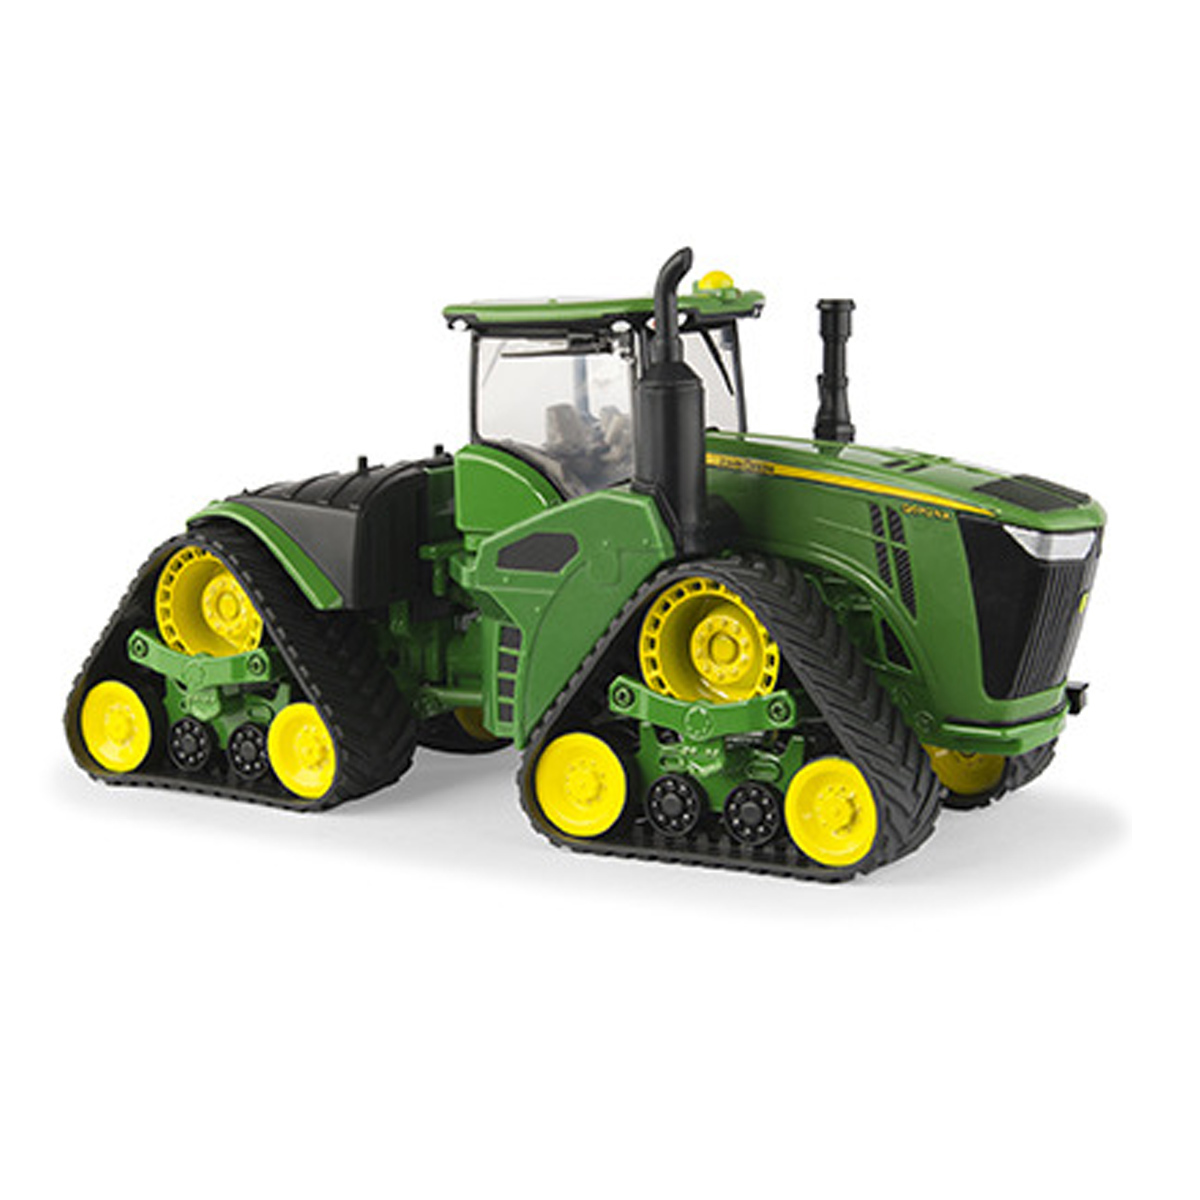 1/32 9570RX Tractor